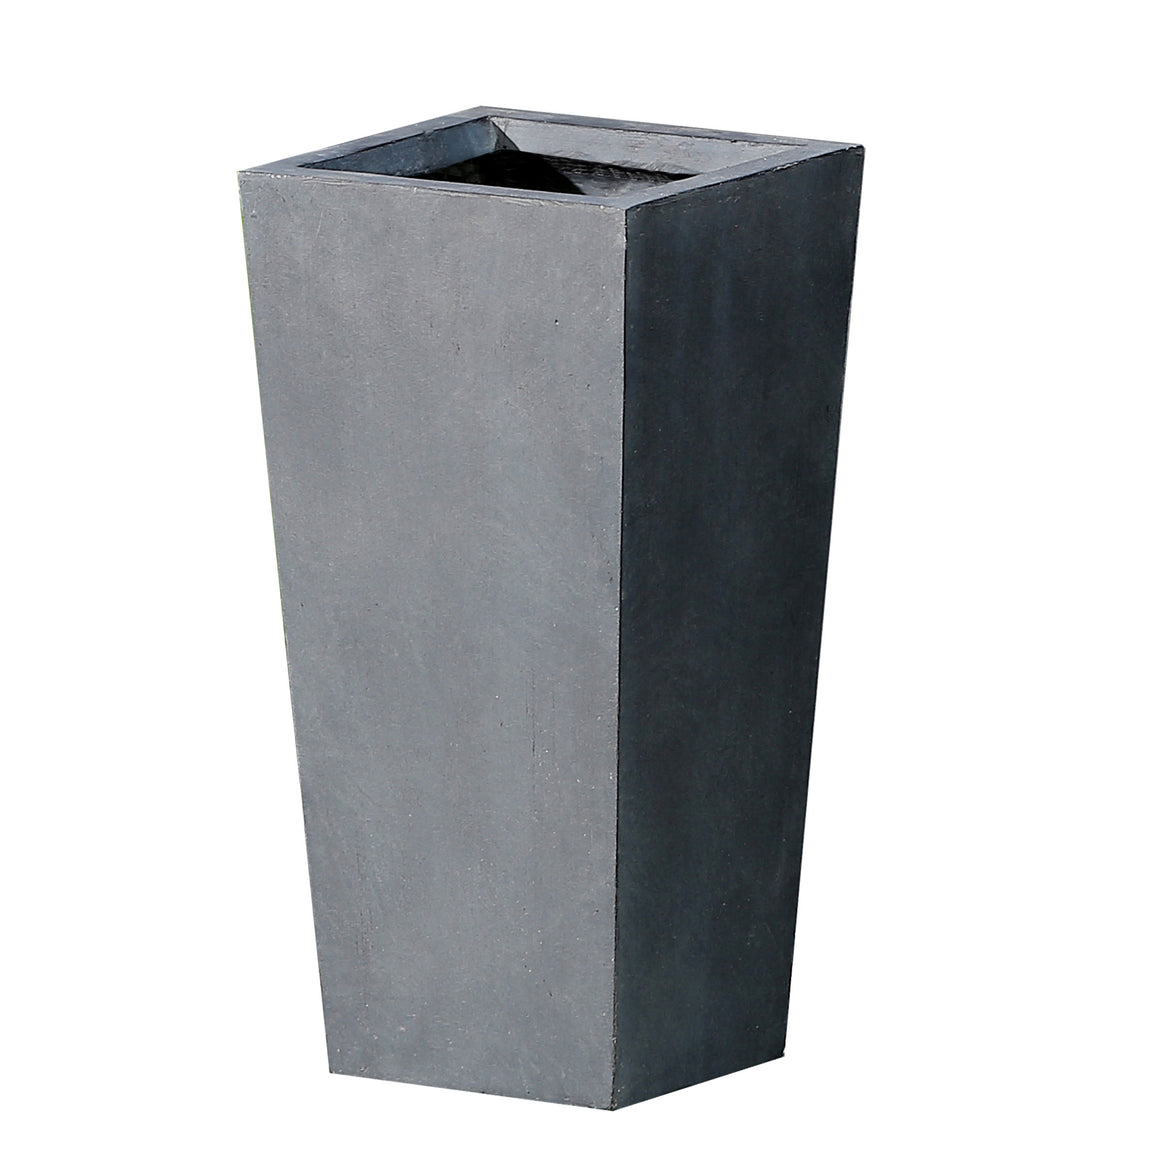 Garden Planter - Tapered Stone Finish Tall Planter (Medium) on white background planter is empty